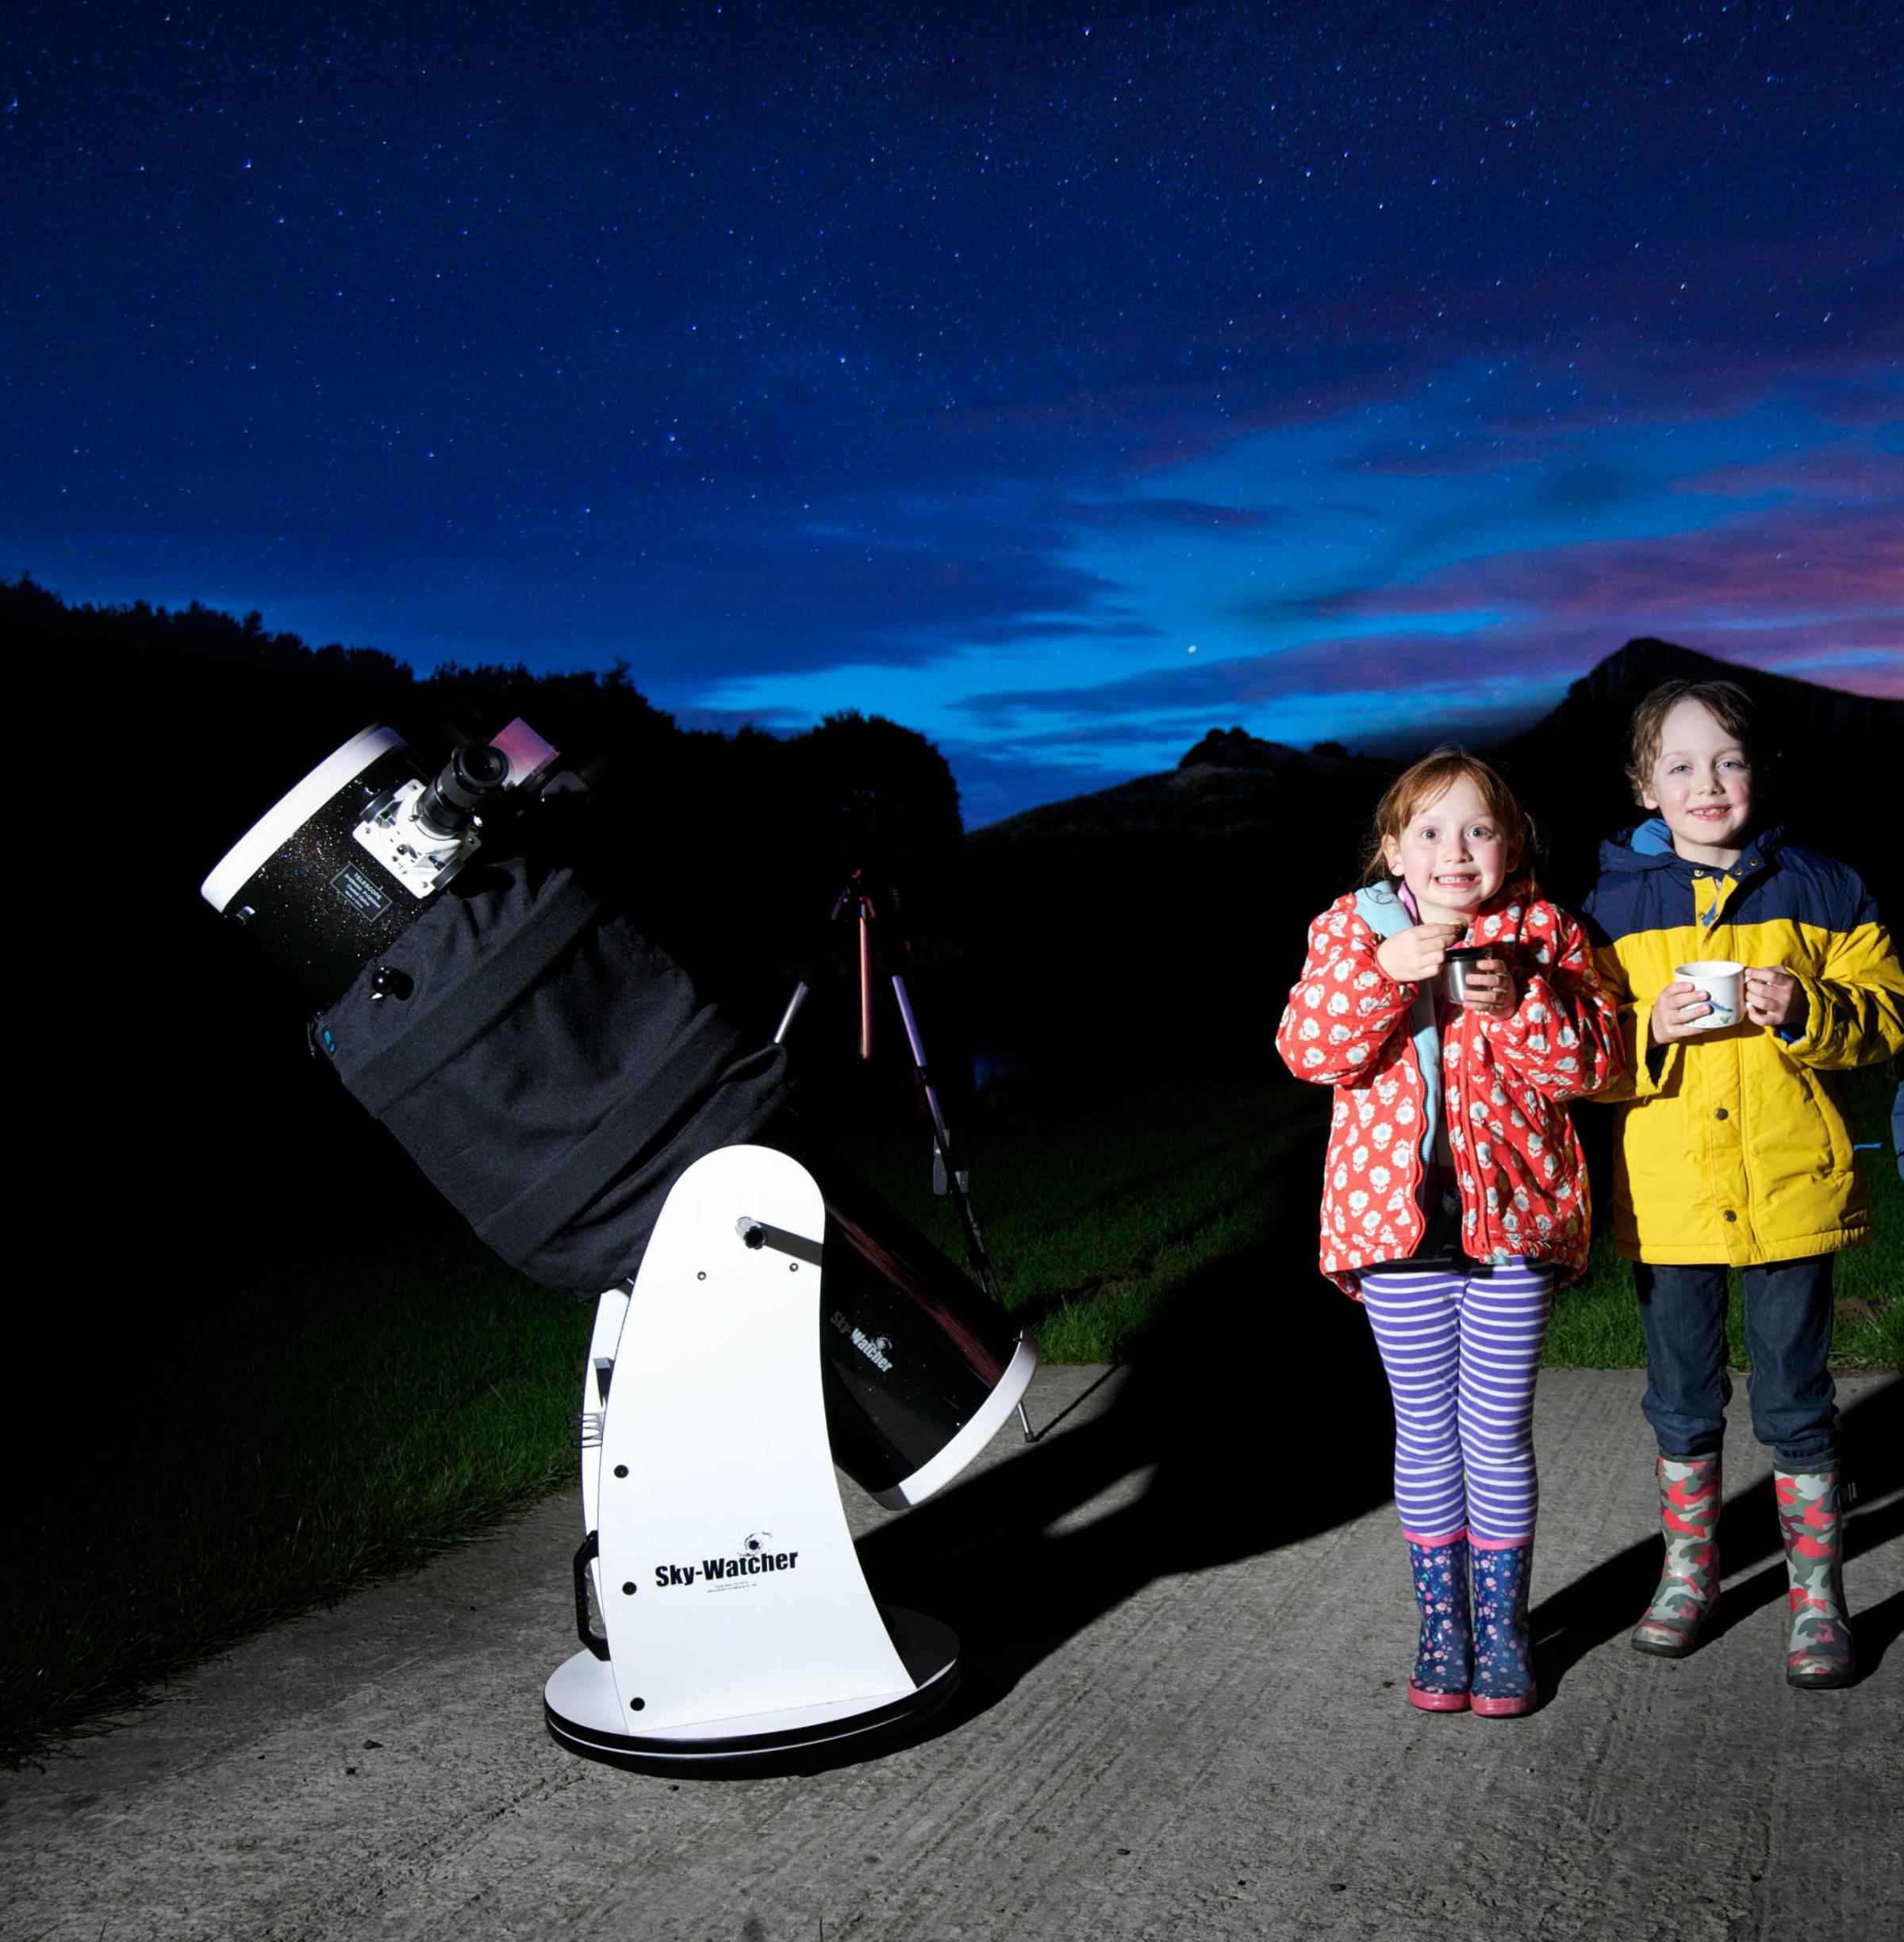 Sky-watchers recruited for charity's annual Oxfordshire star count - Oxford Mail